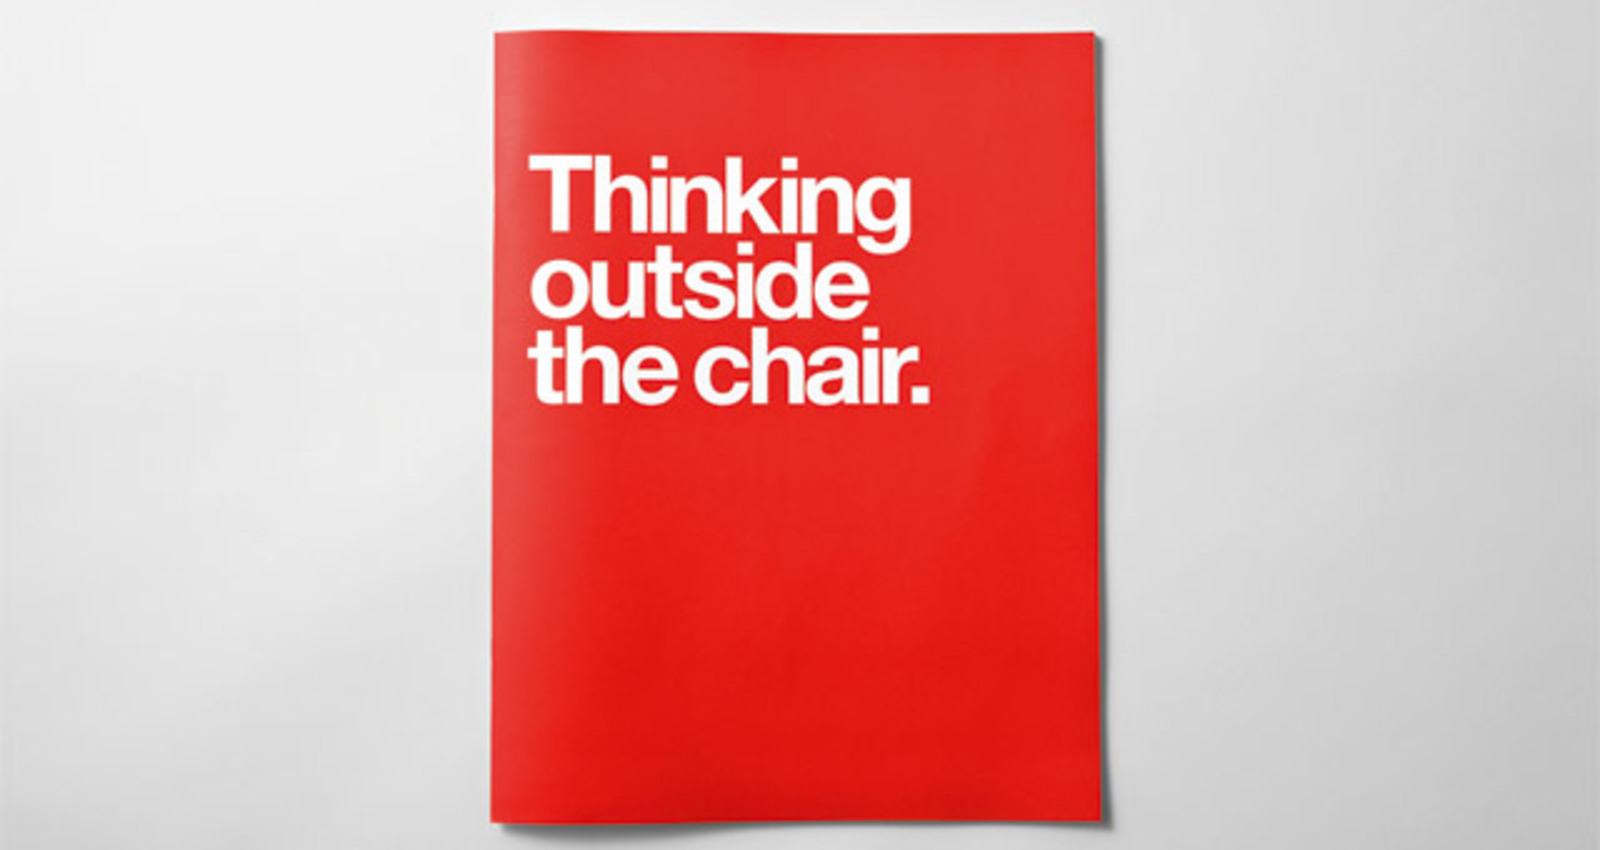 Thinking outside the chair